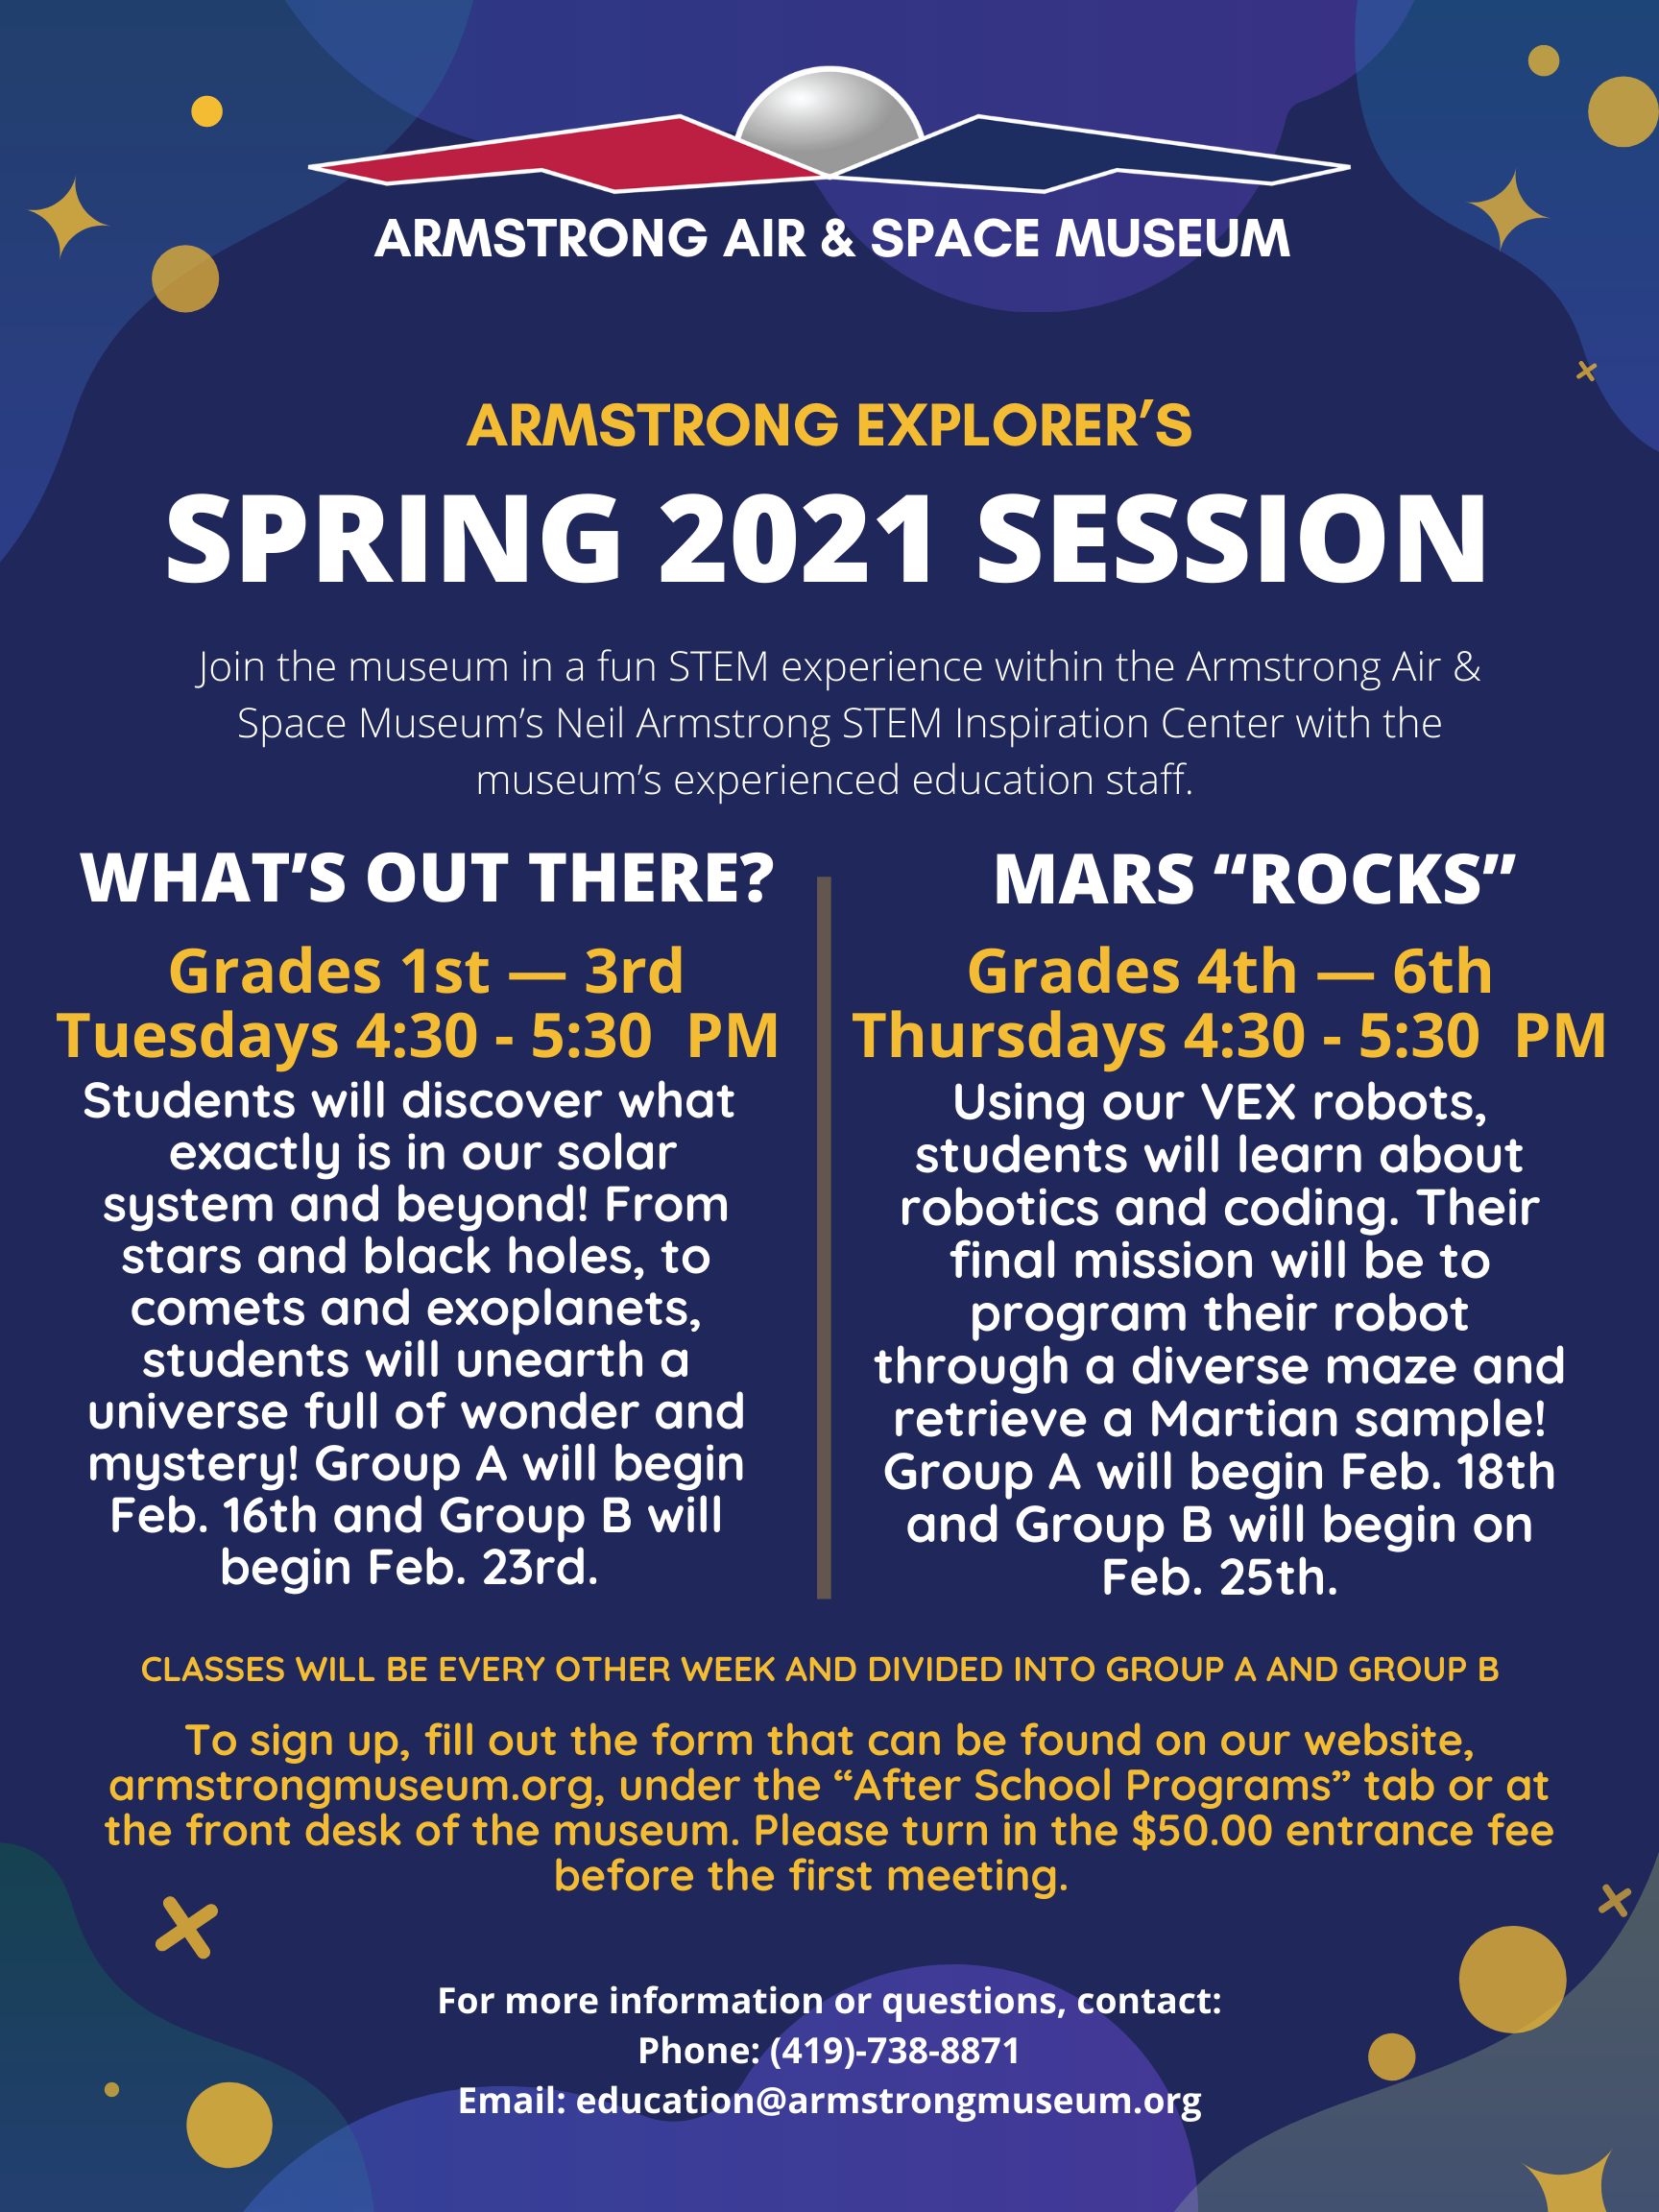 Spring 2021 Armstrong Explorers